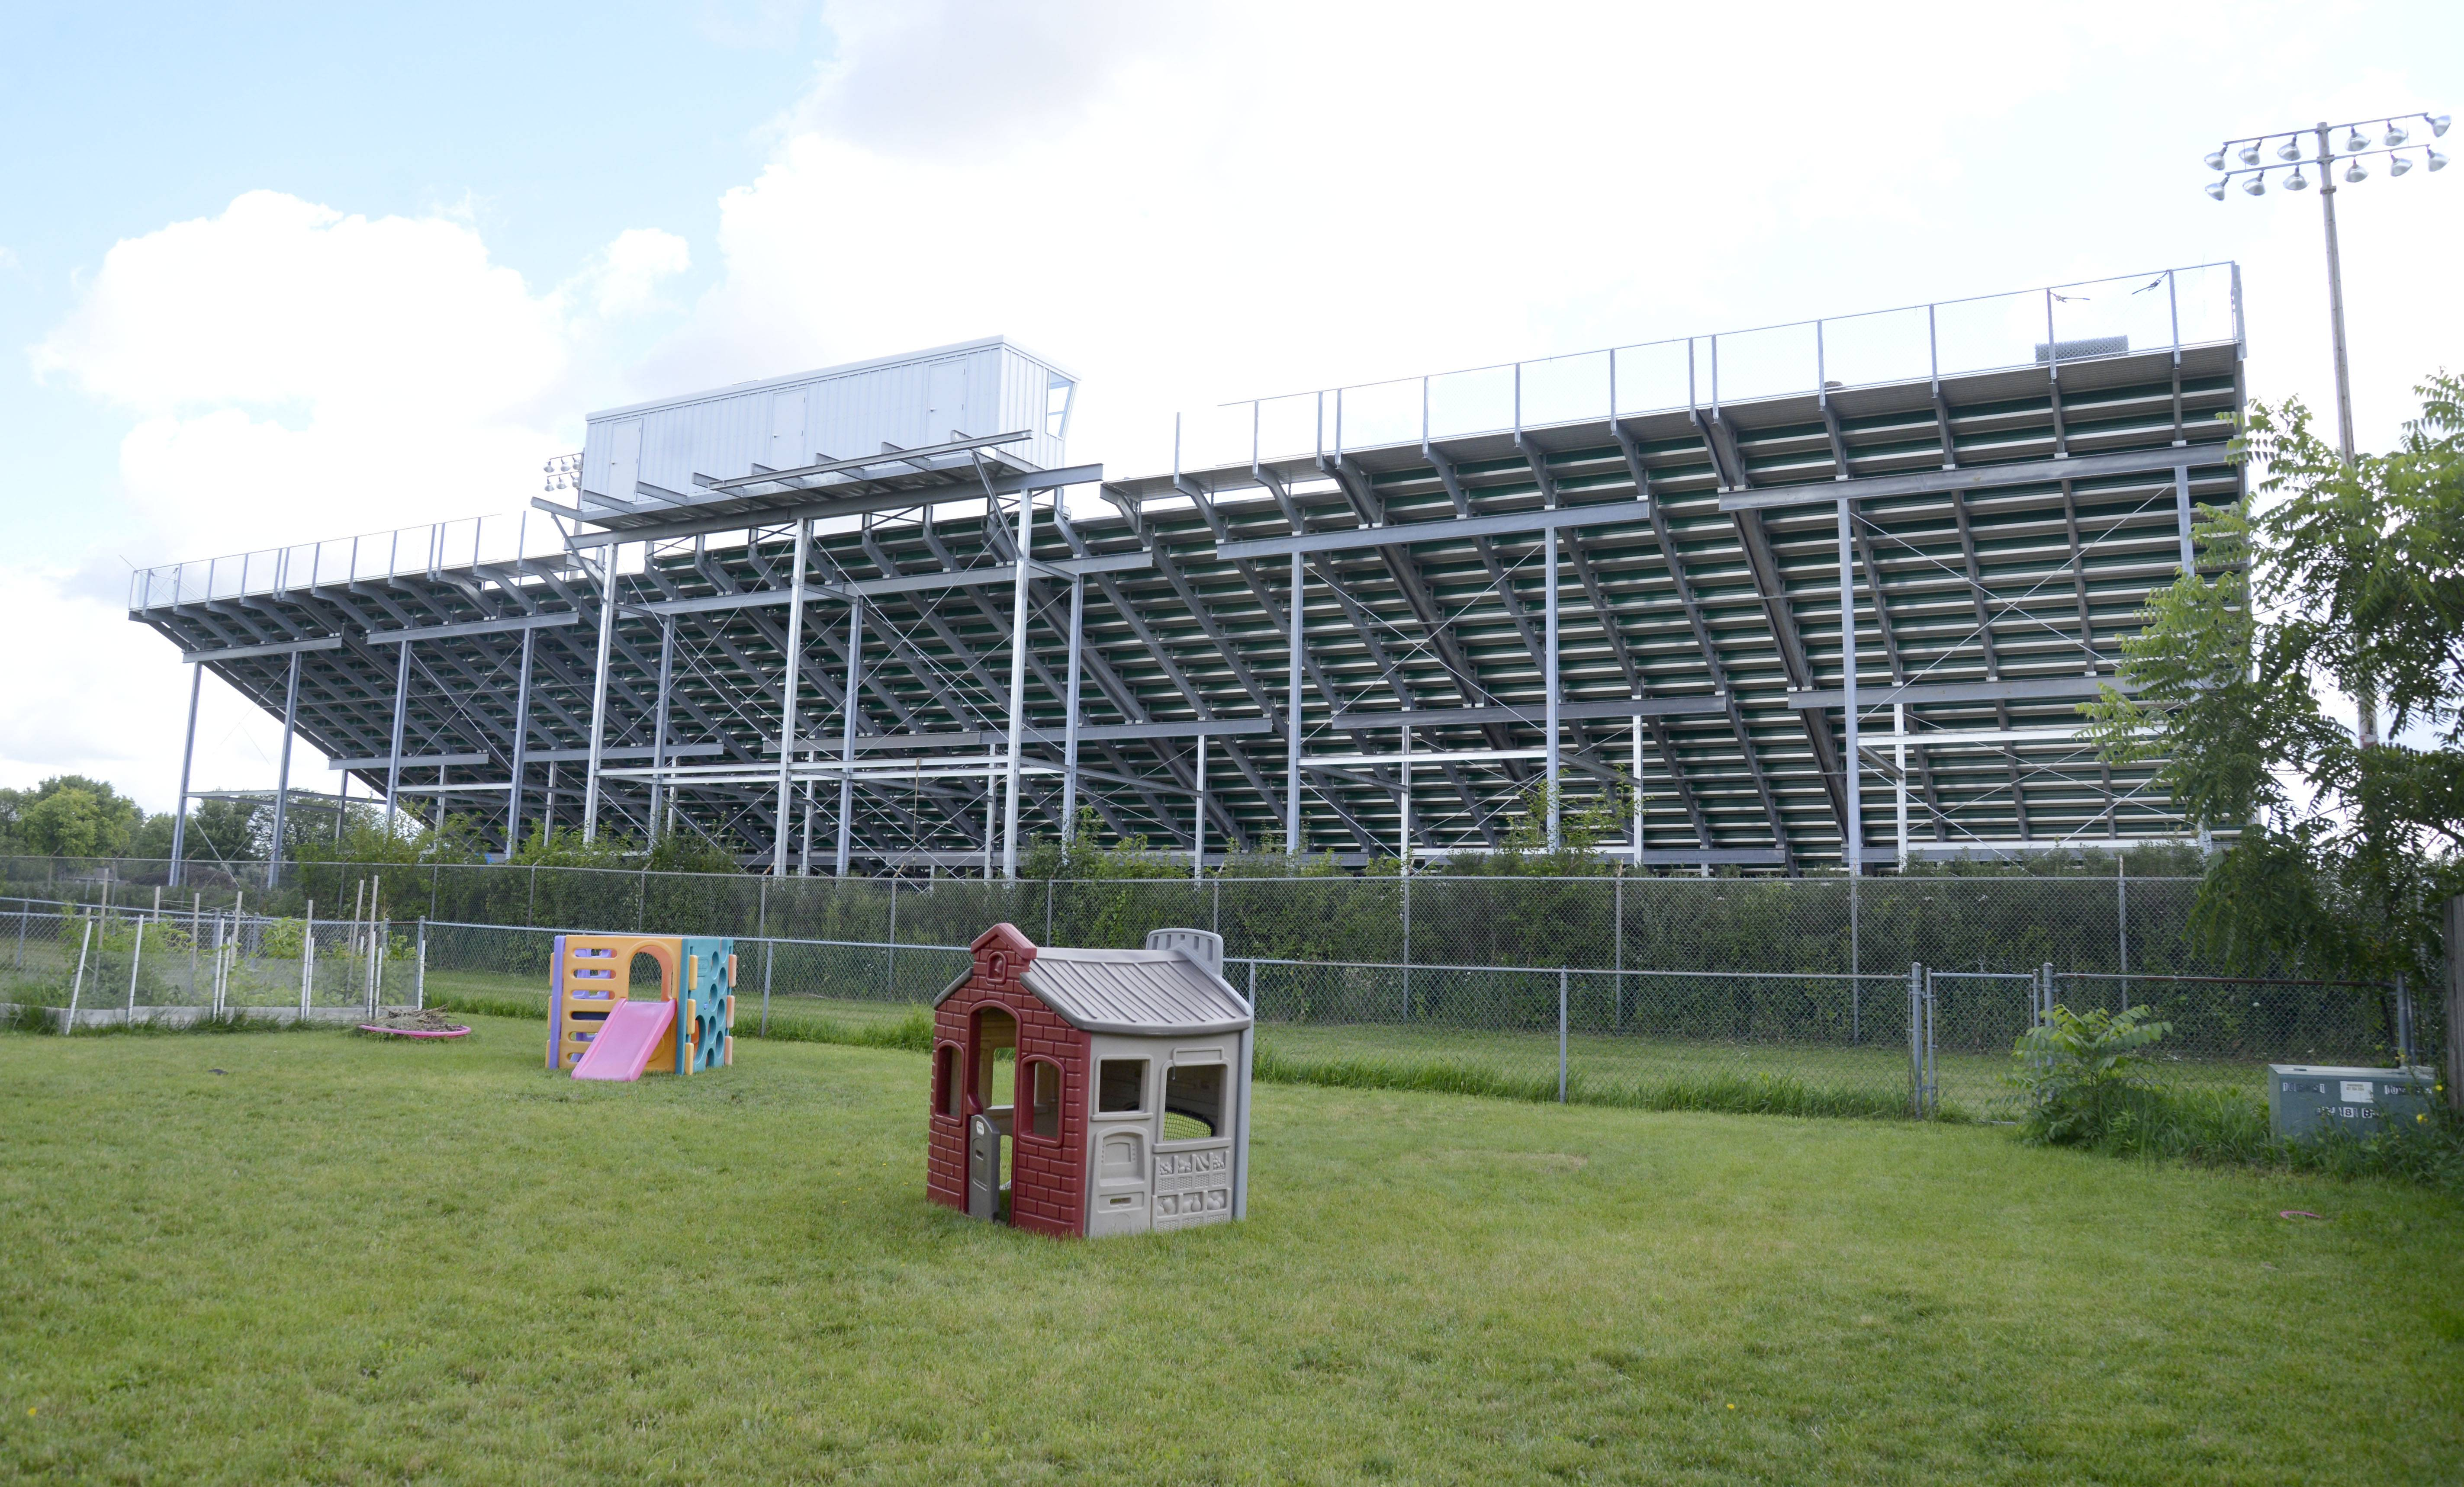 Judge's Crystal Lake South bleacher demolition order doesn't surprise opponents